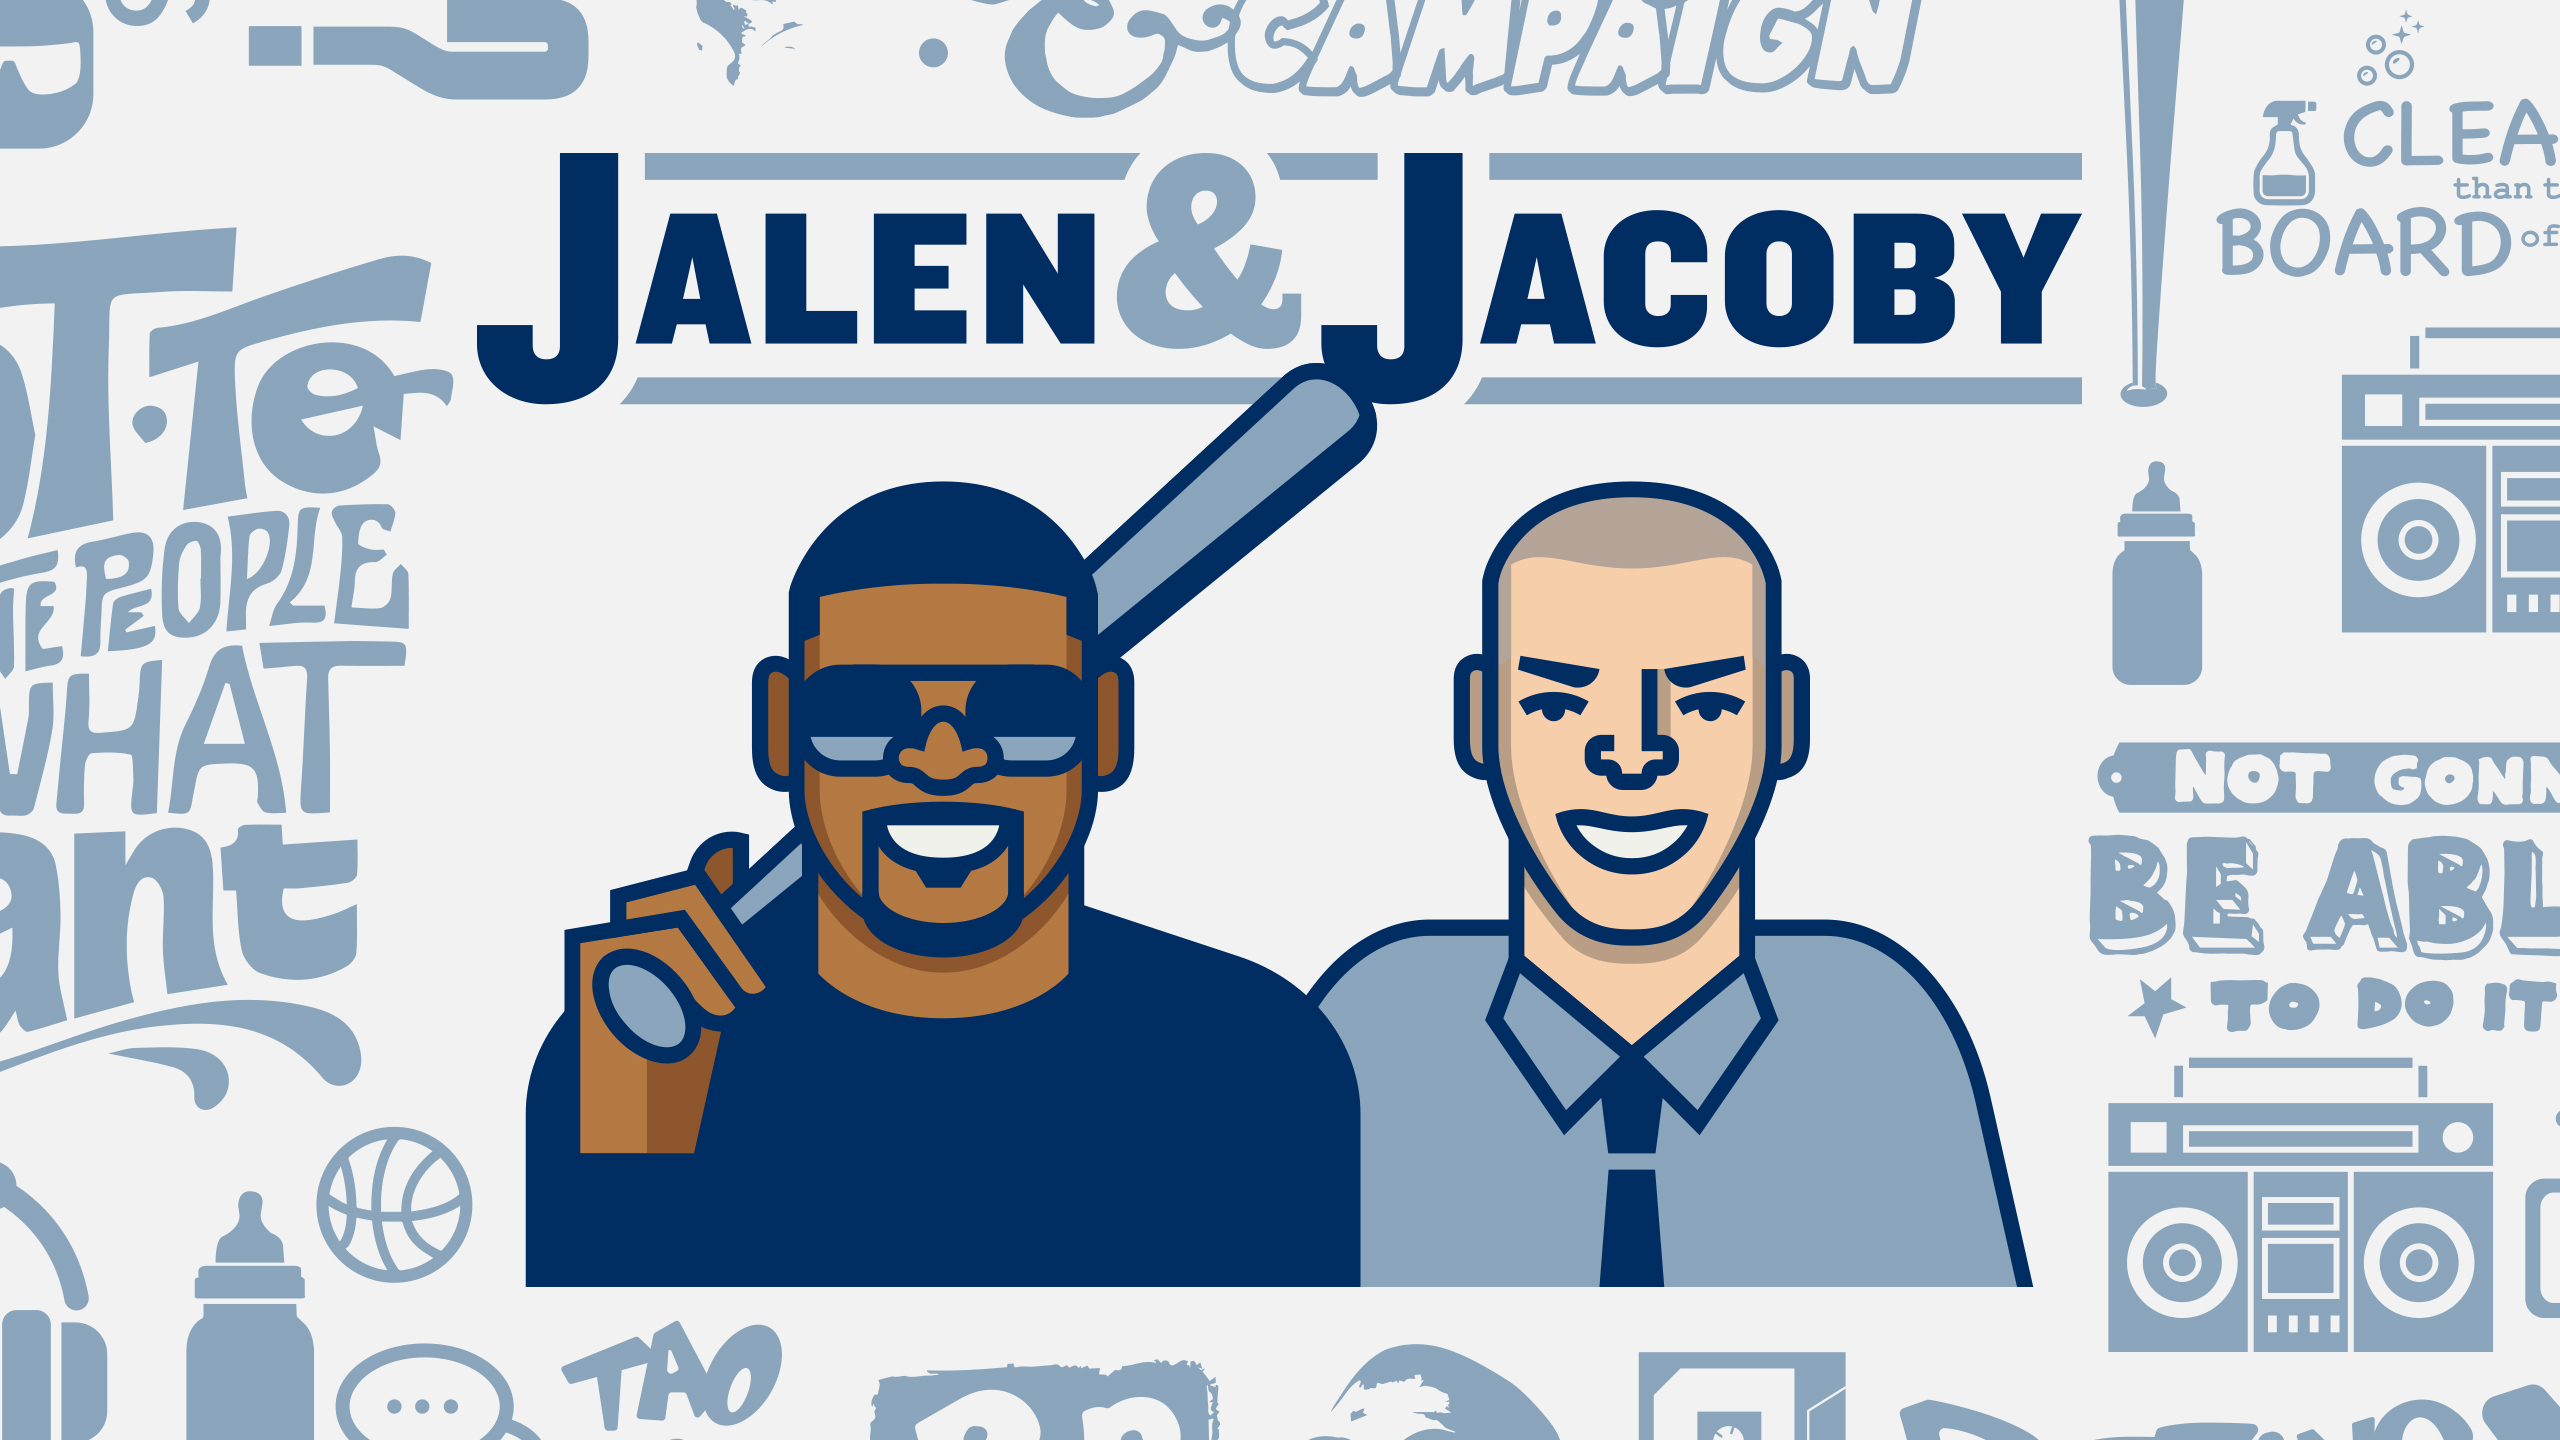 Tue, 9/18 - Jalen & Jacoby